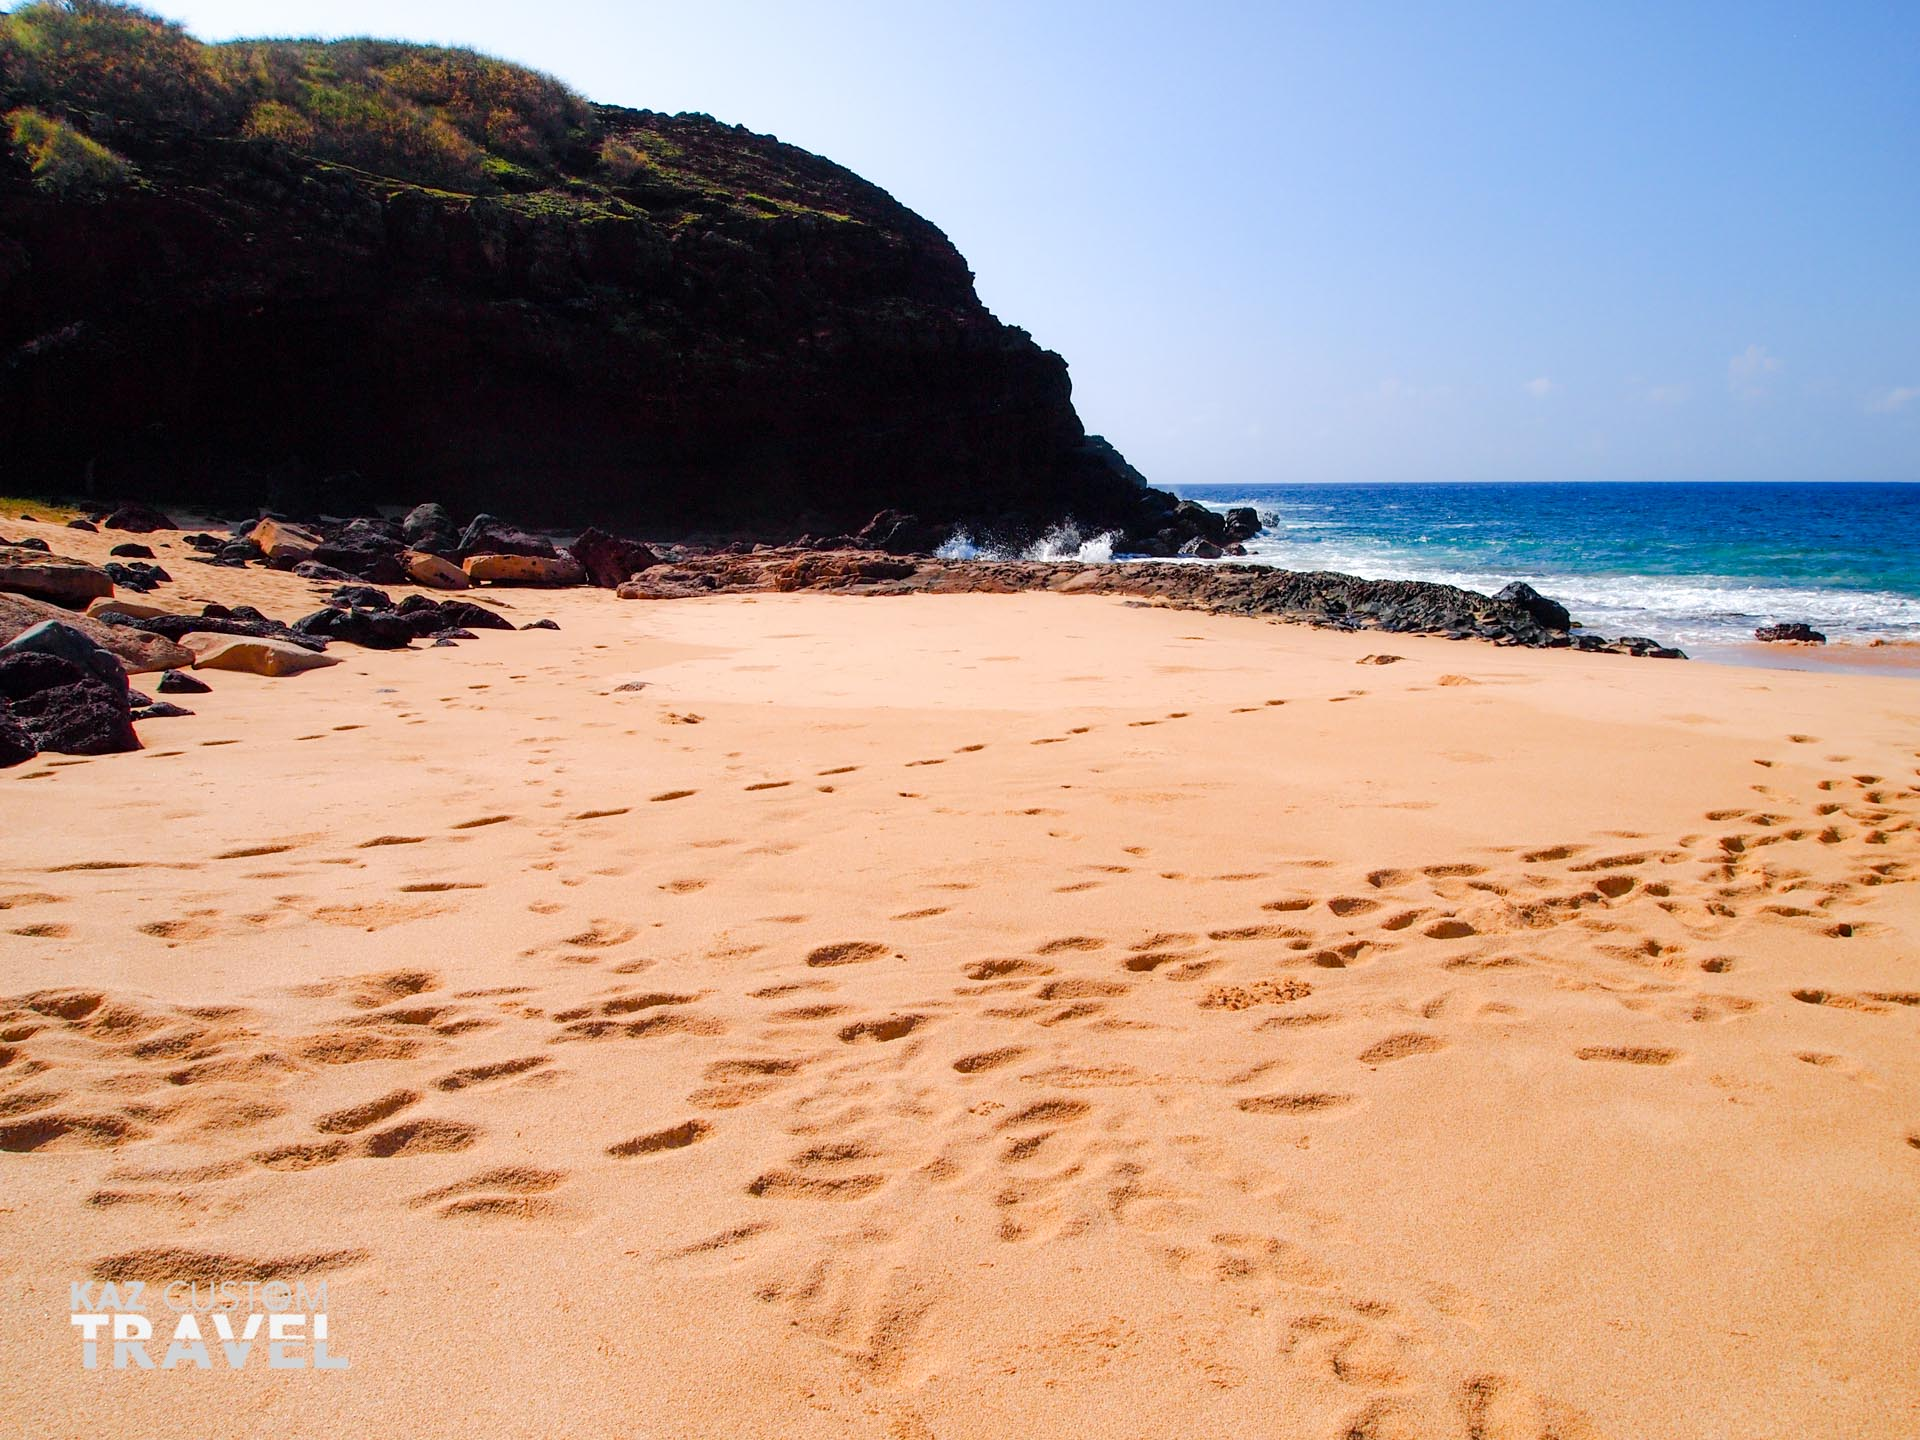 View south on the beach at Molokai